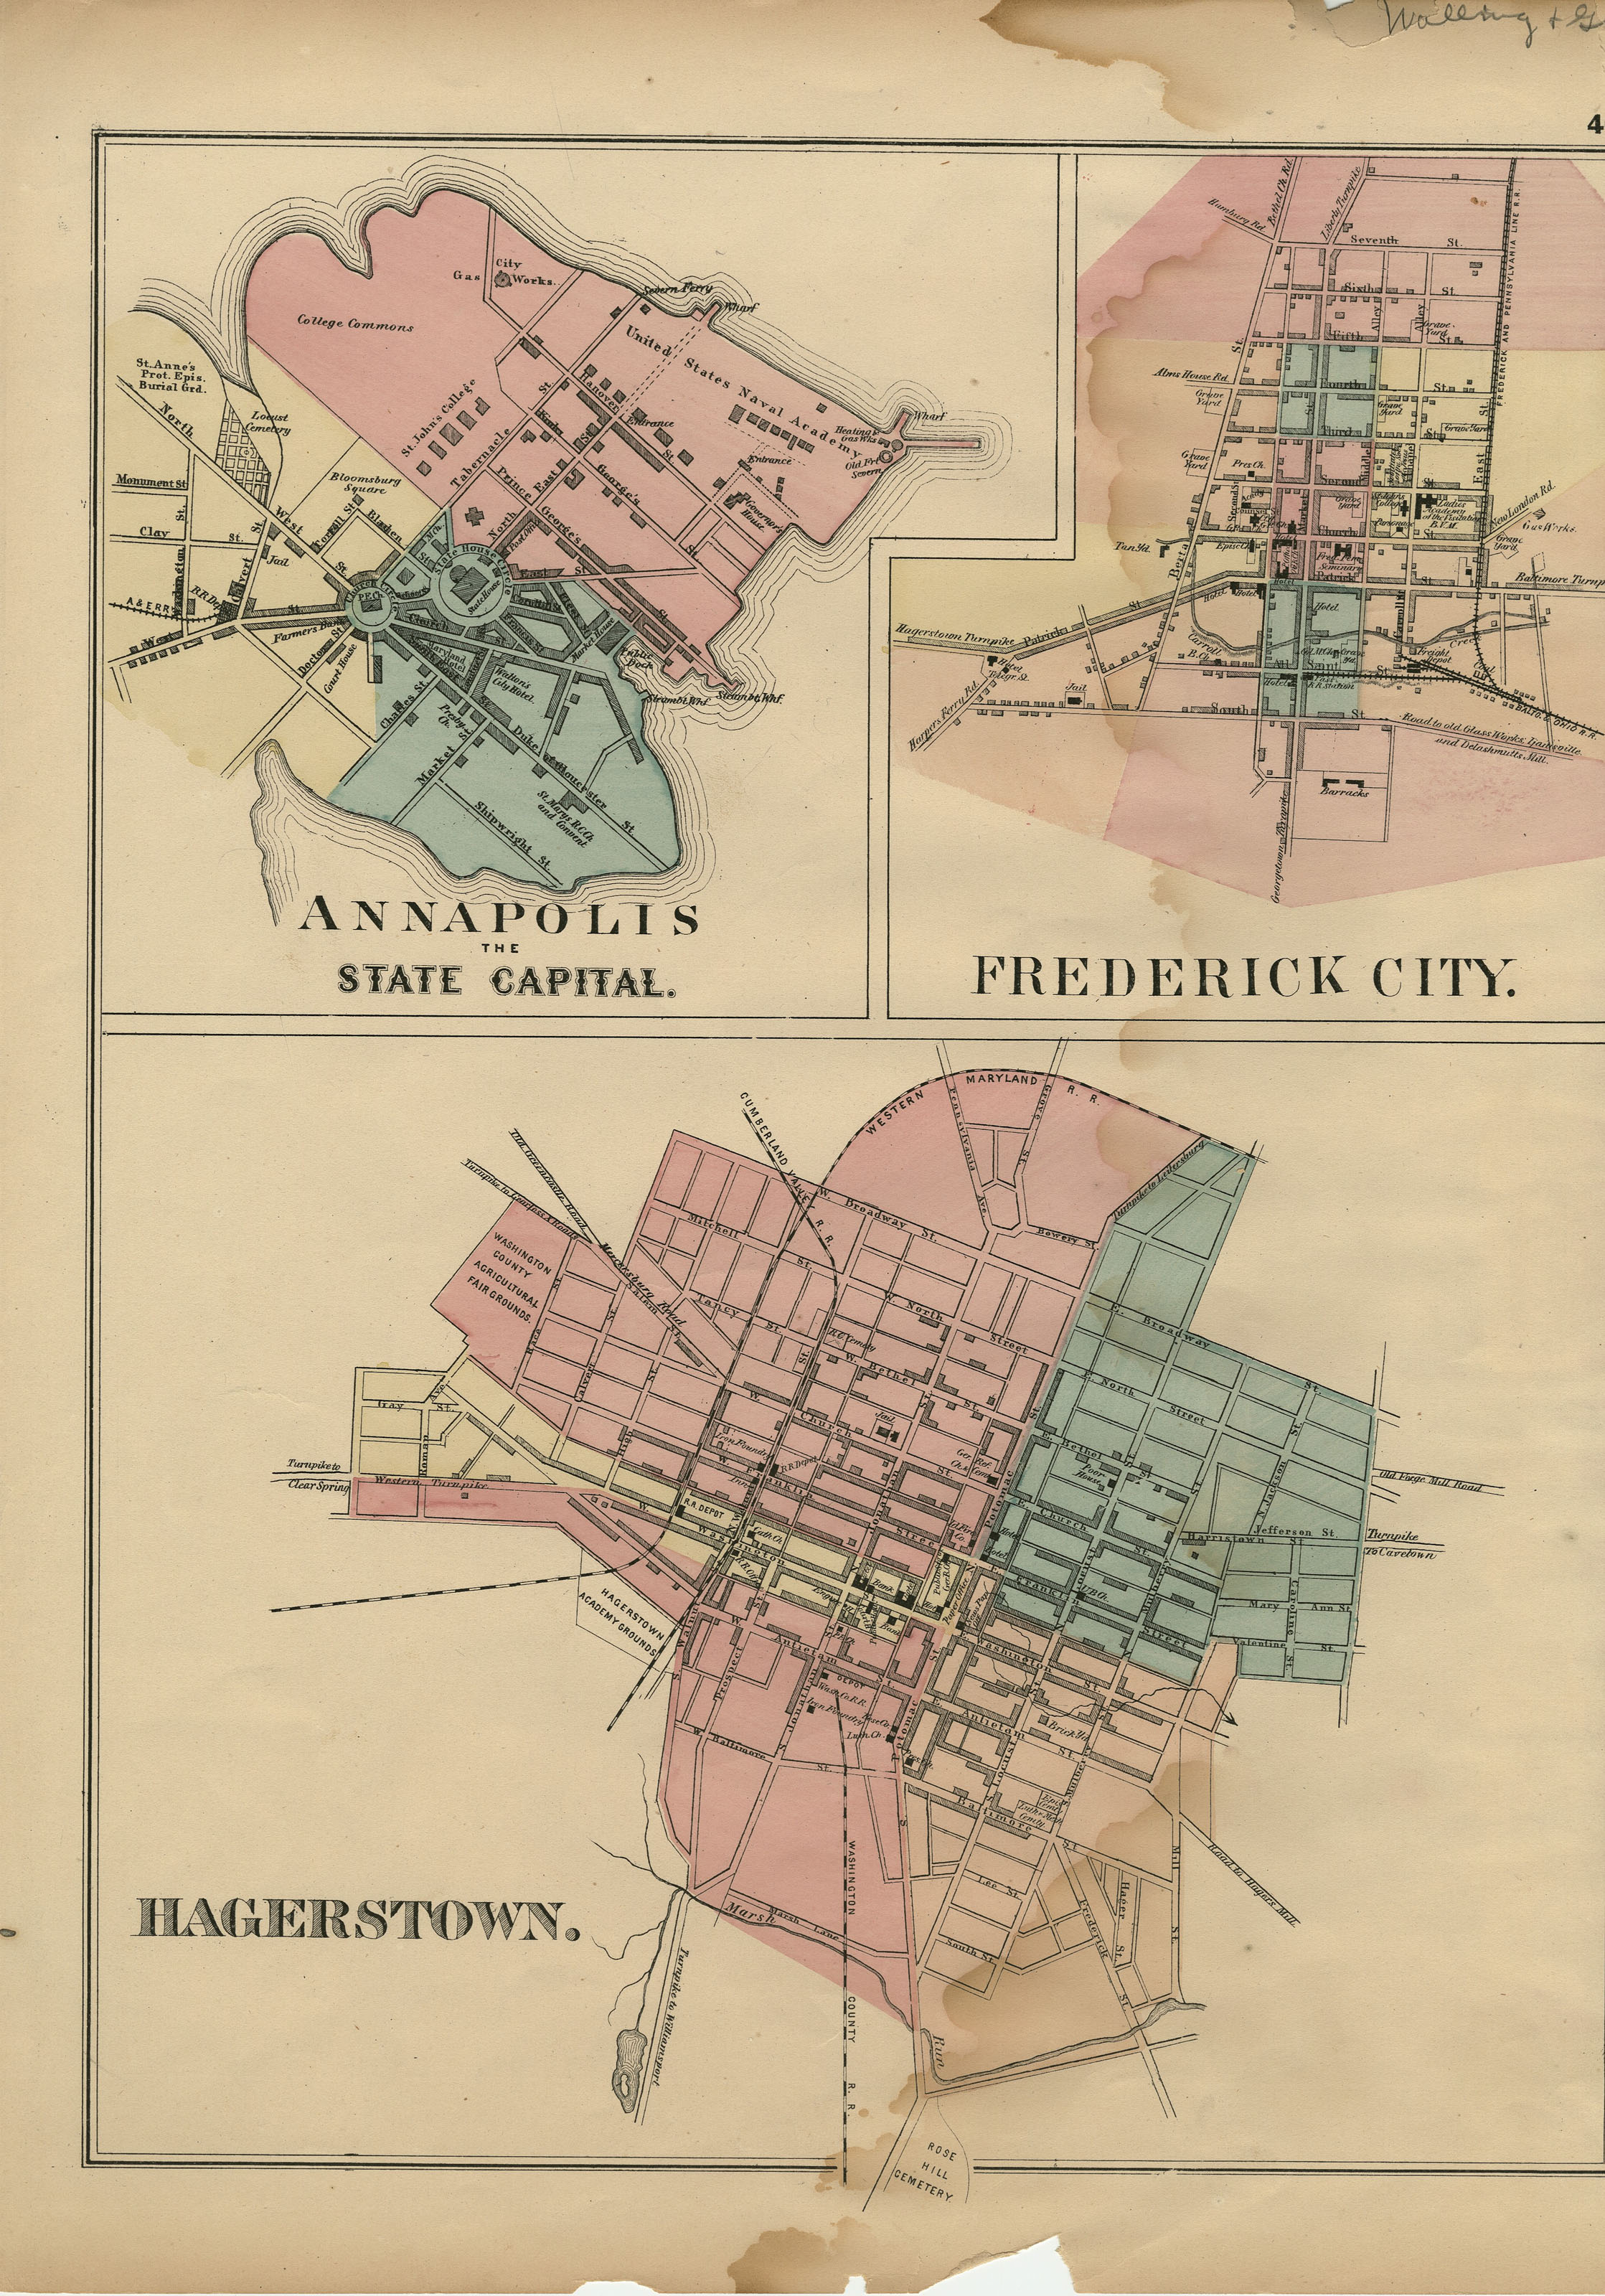 Image of Annapolis, Frederick City, and Hagerstown City Maps